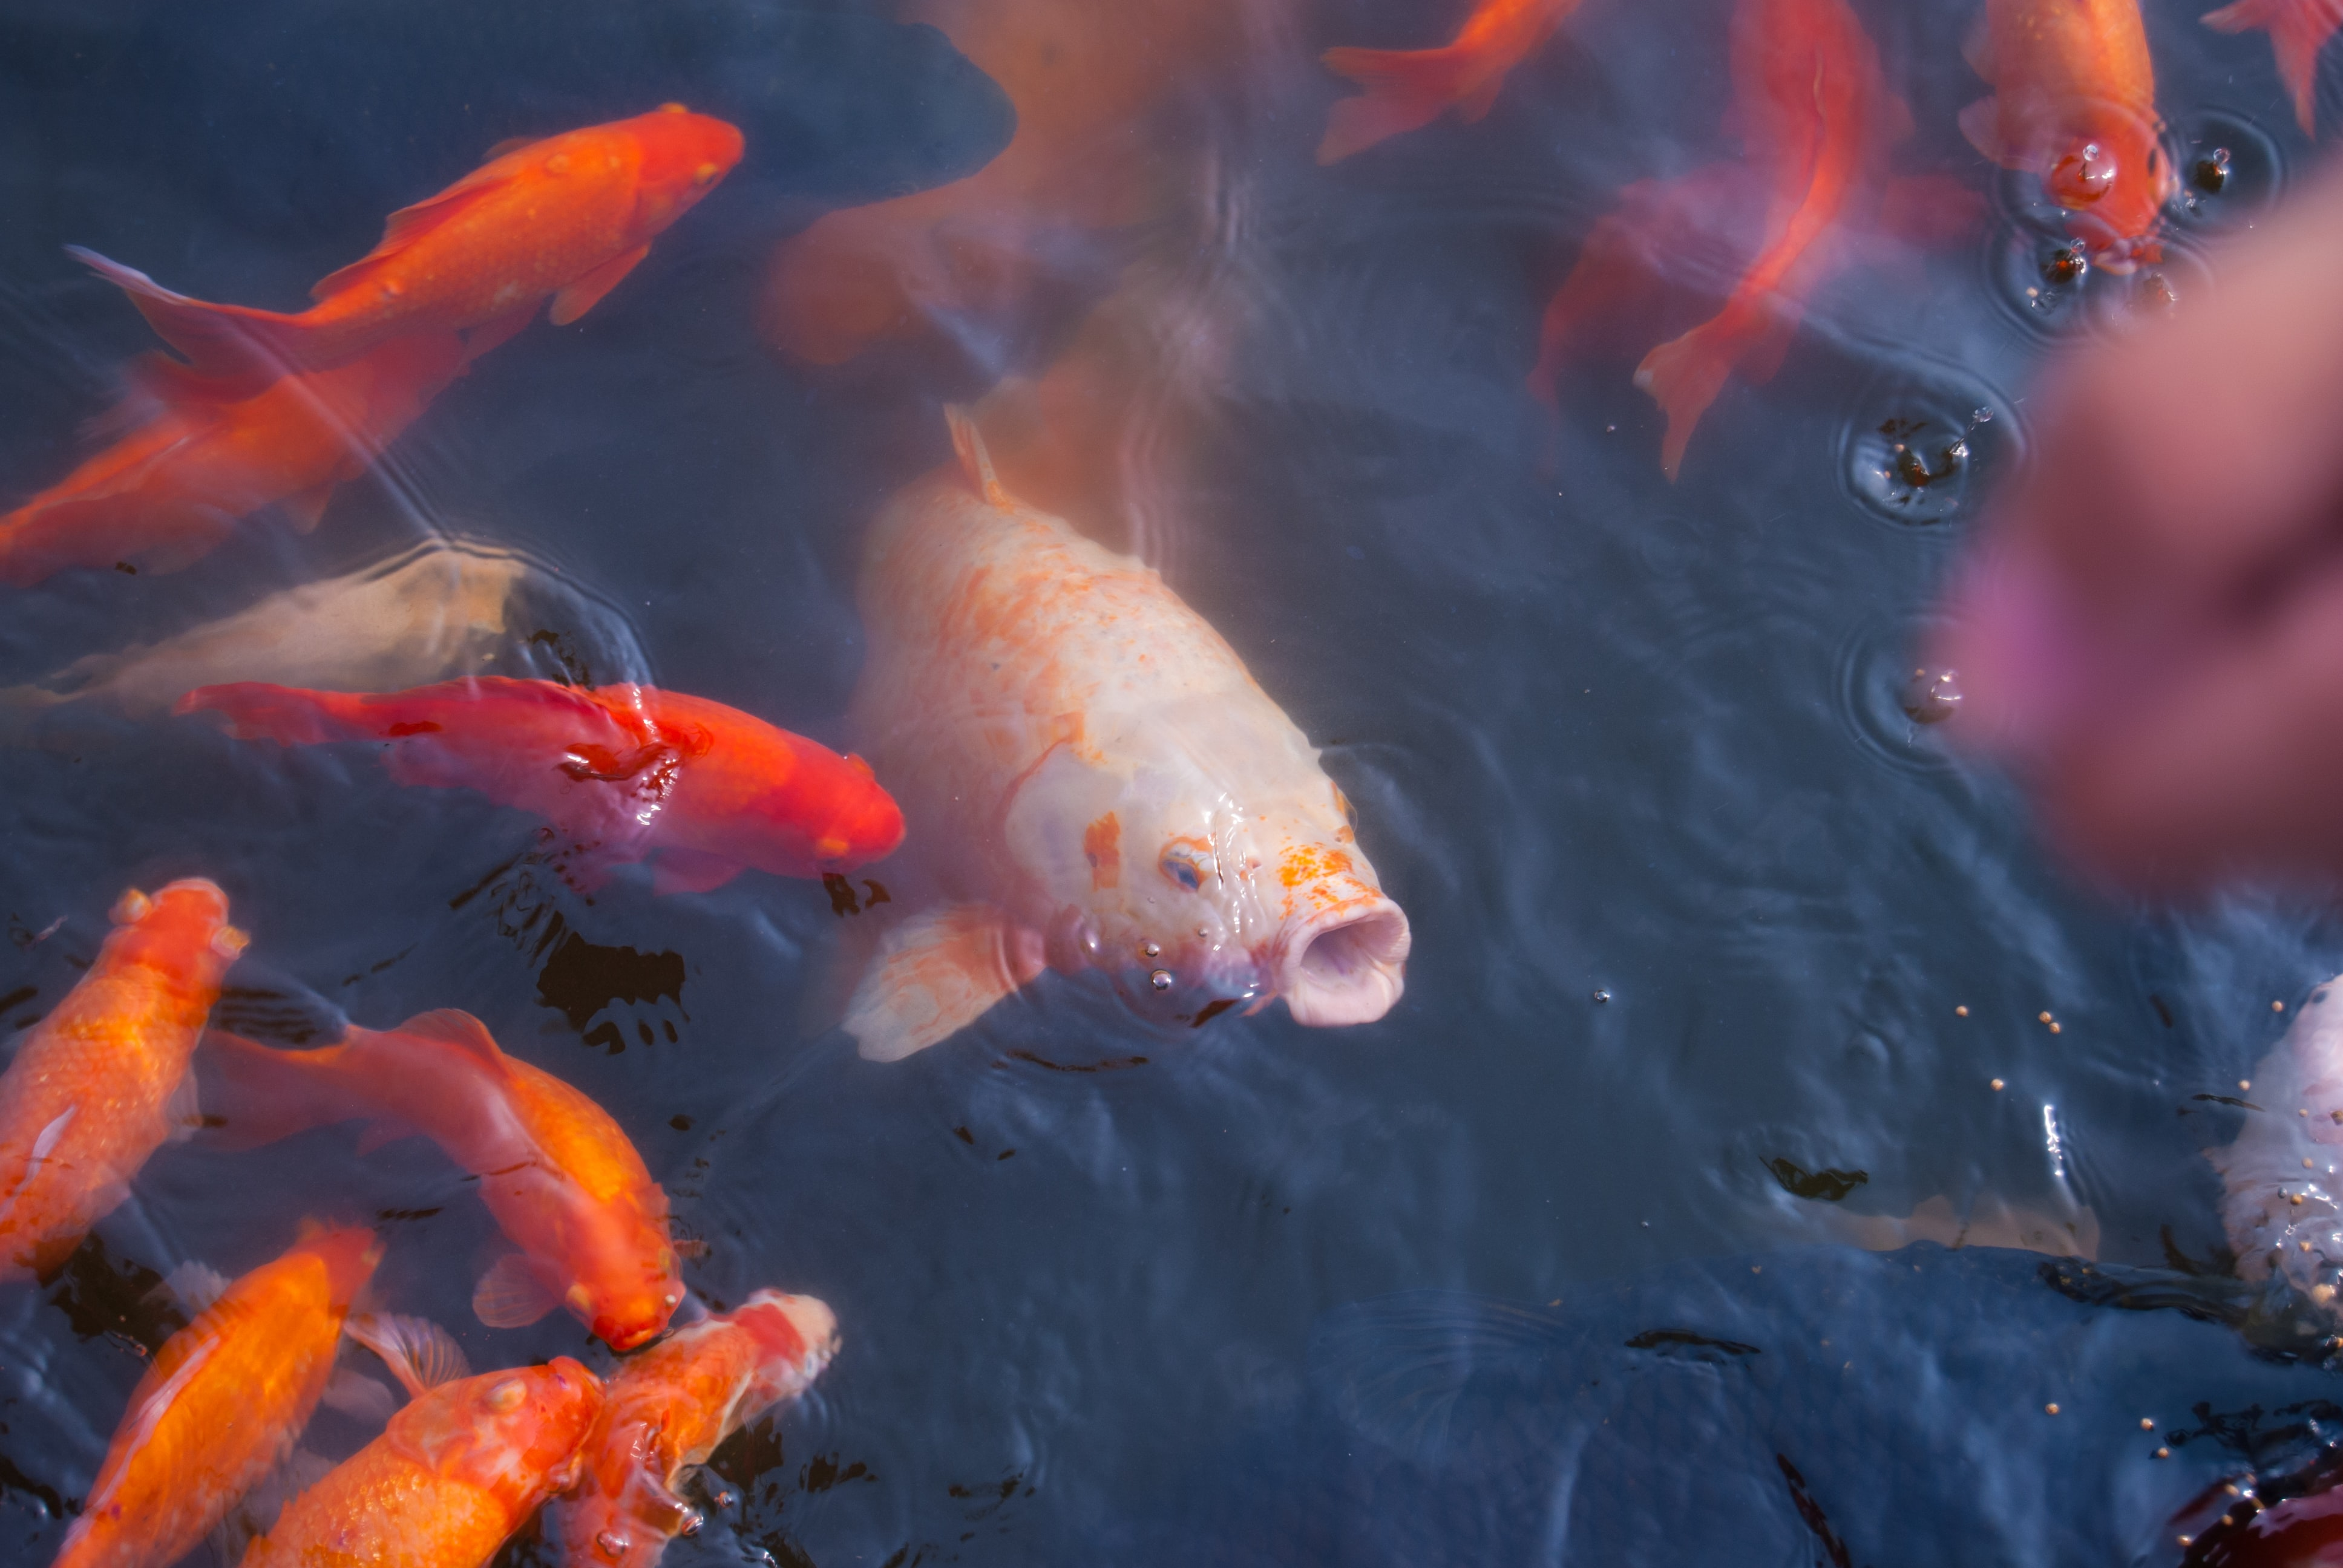 School of orange koi fish open their mouths in the water for food